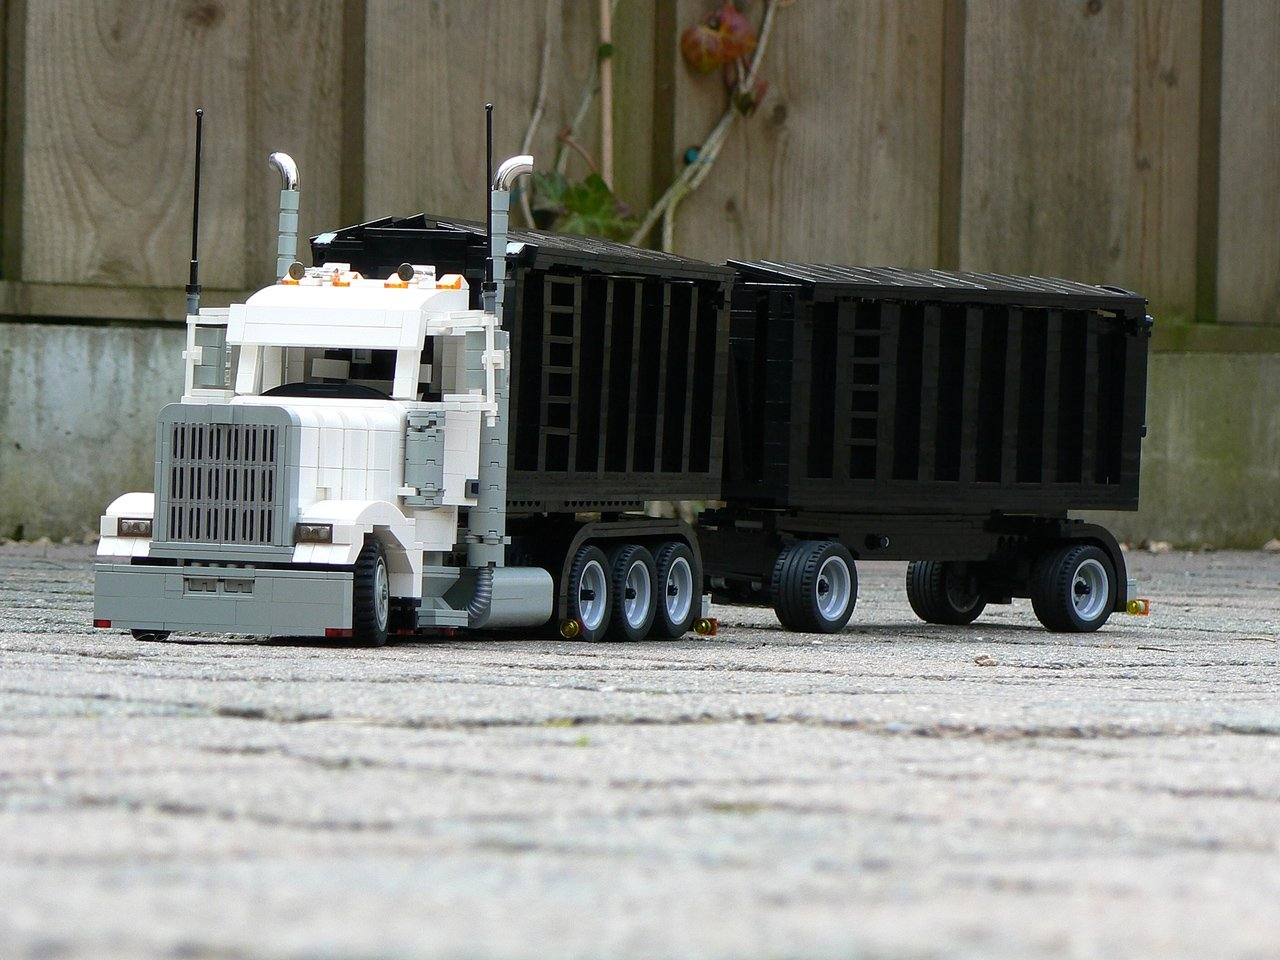 kenworth_w900_white_one_-_006m.jpg